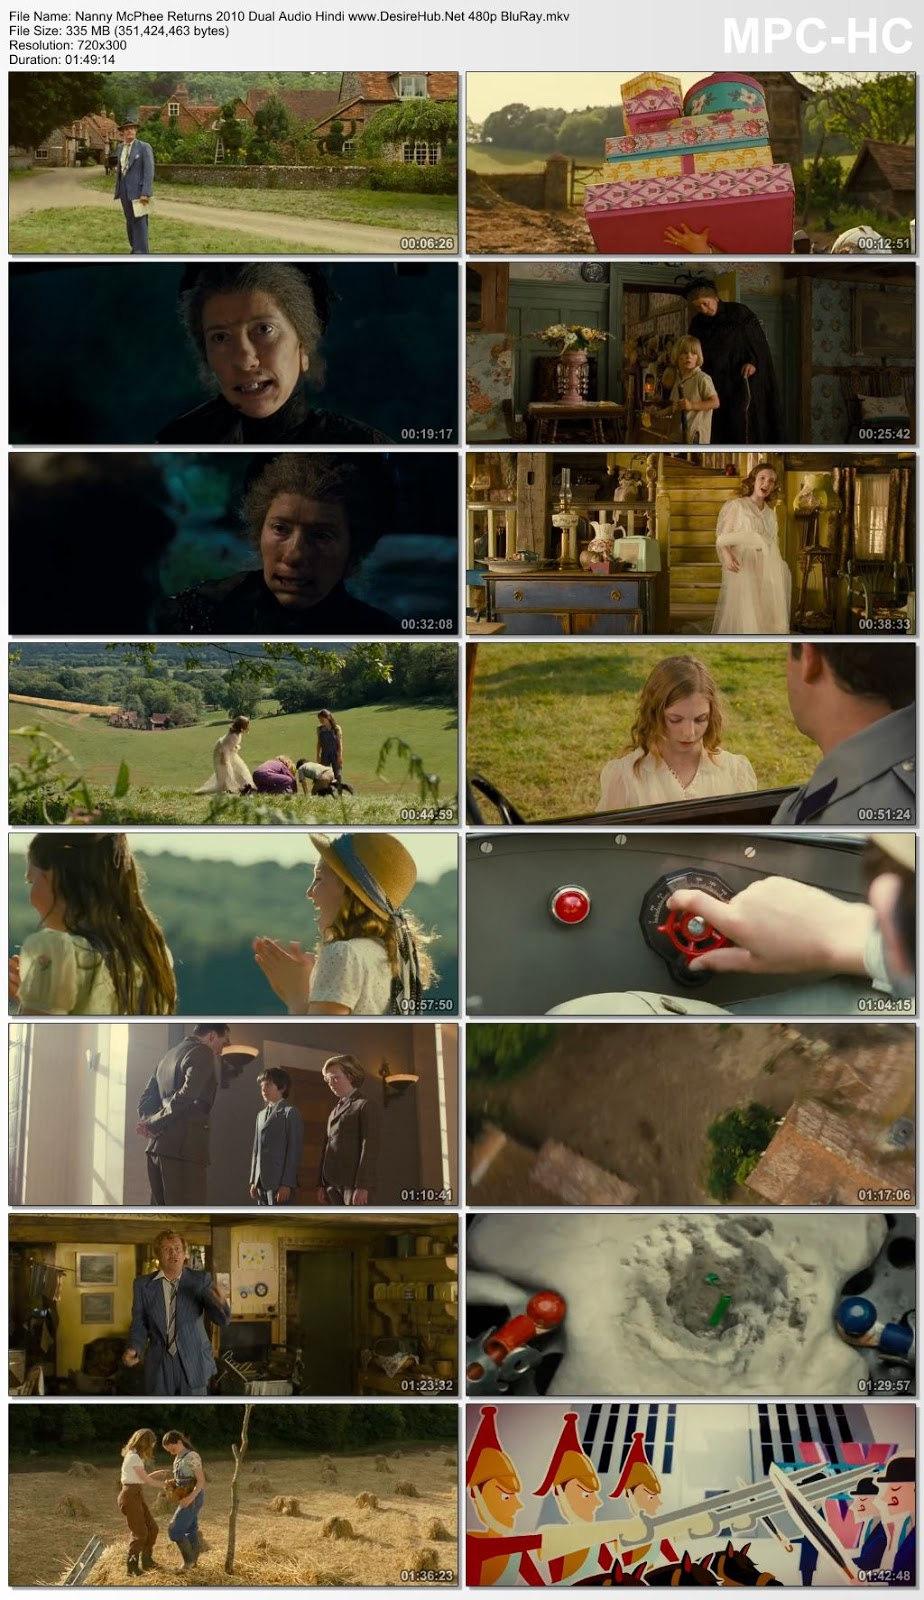 Nanny McPhee Returns 2010 Dual Audio Hindi 480p BluRay 300MB Desirehub